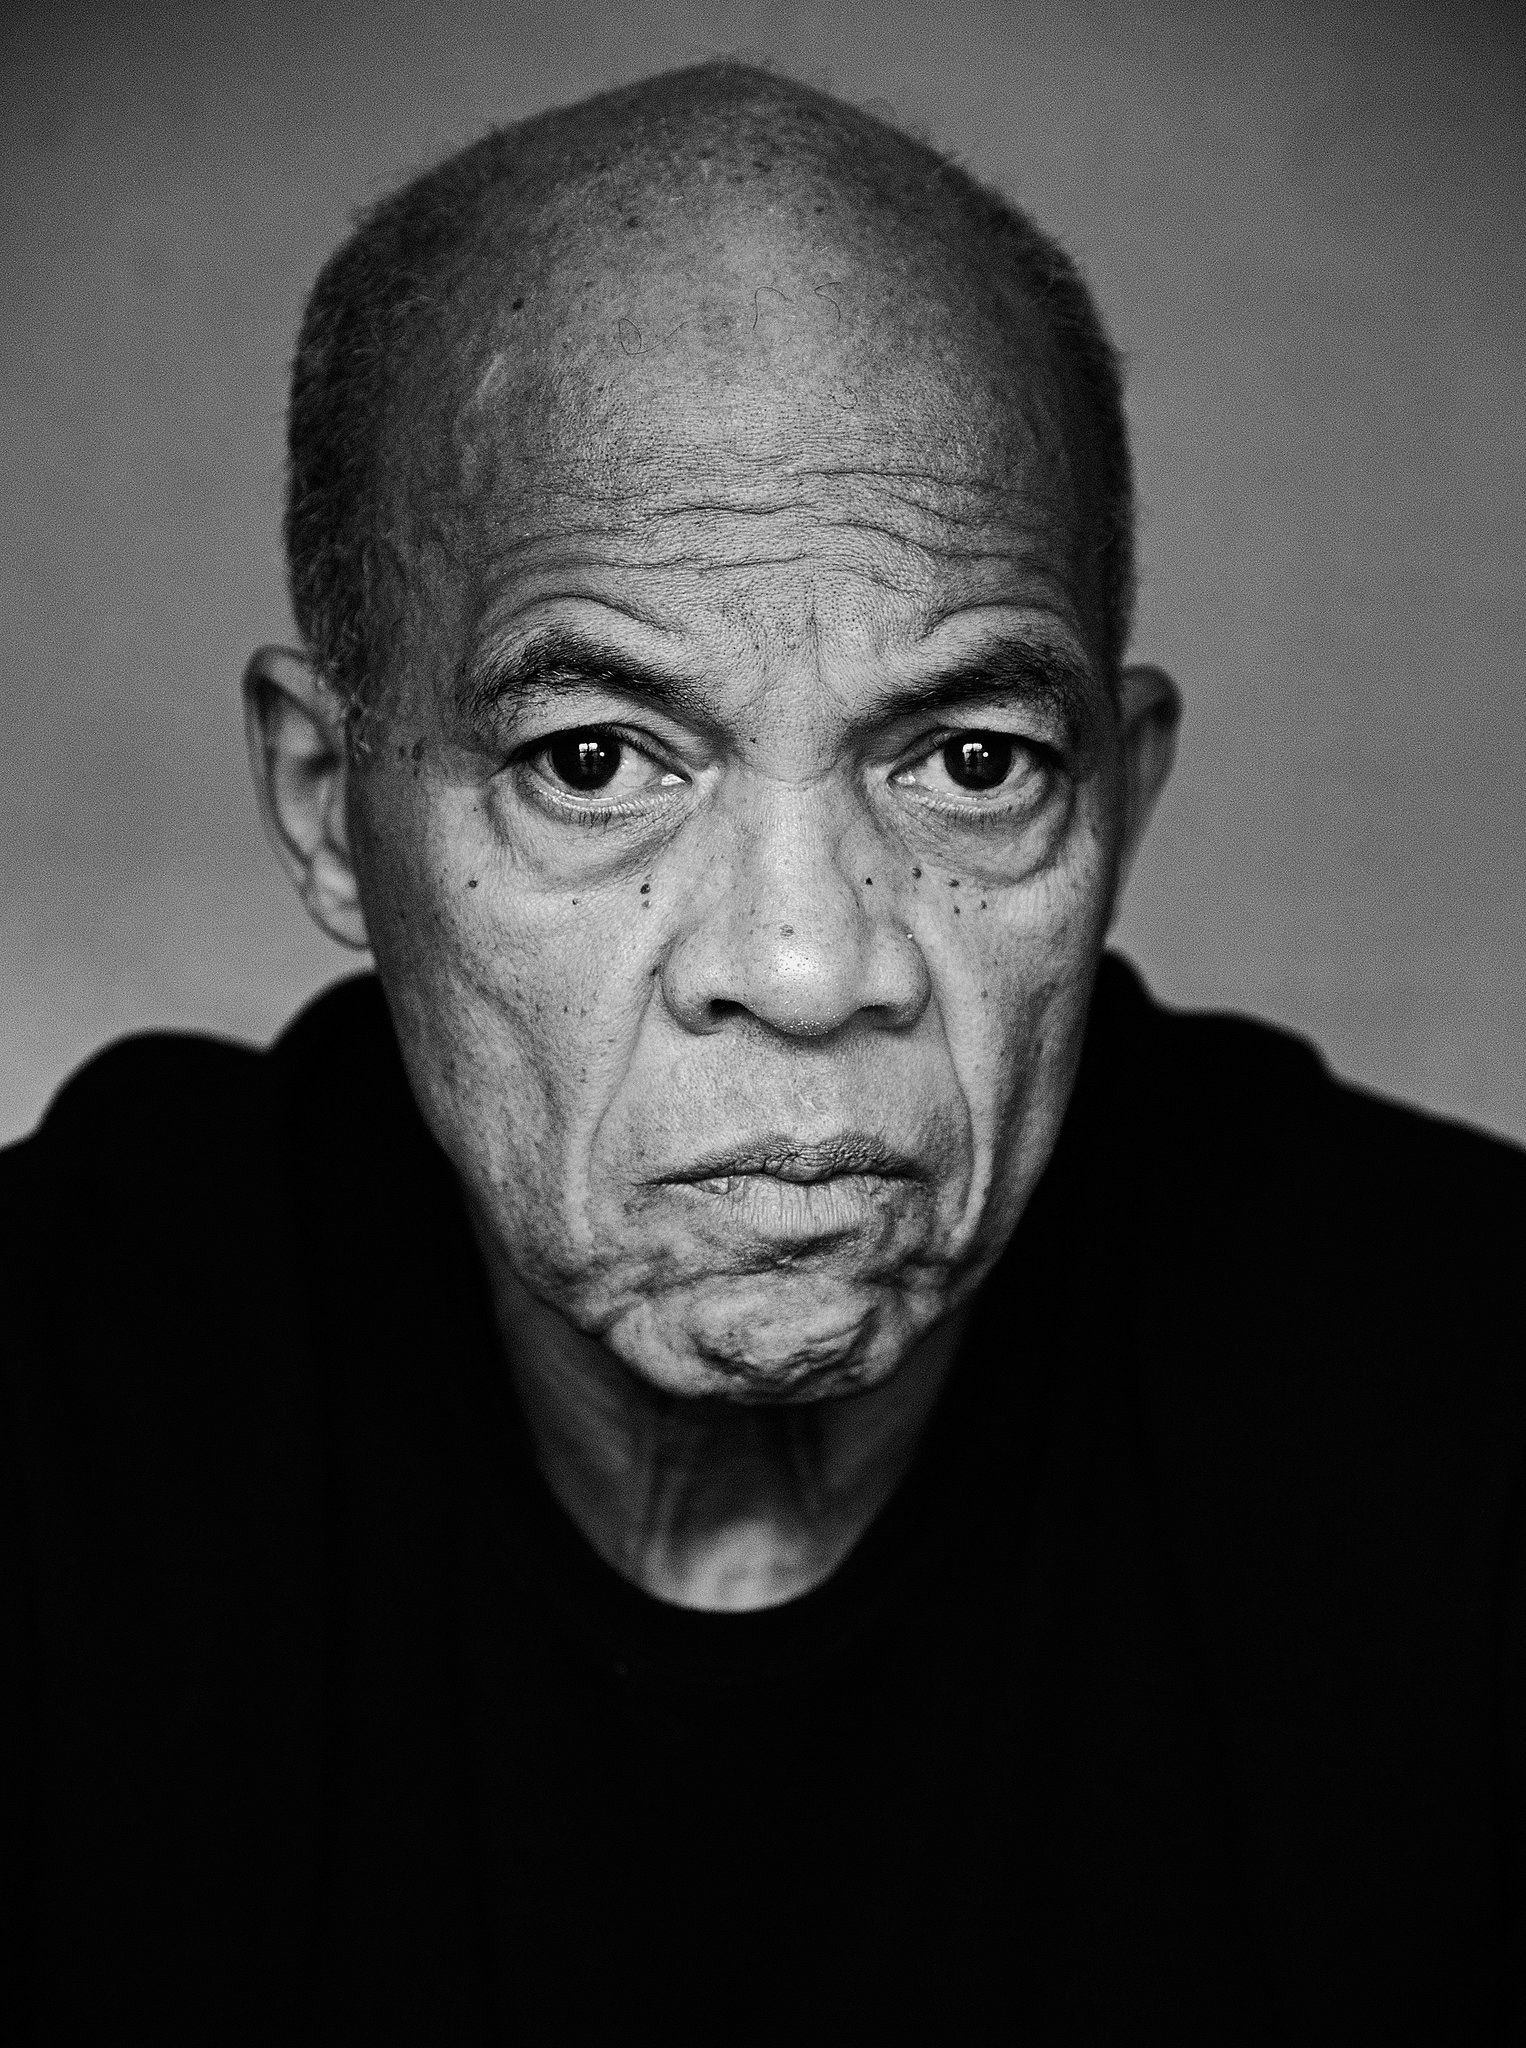 New York Times Magazine - John Edgar Wideman Against the WorldLate in a career marked by both triumph and tragedy, the fiercely independent author has written a new book exploring the unsettling case of Emmett Till's father — and the isolation of black men in America.